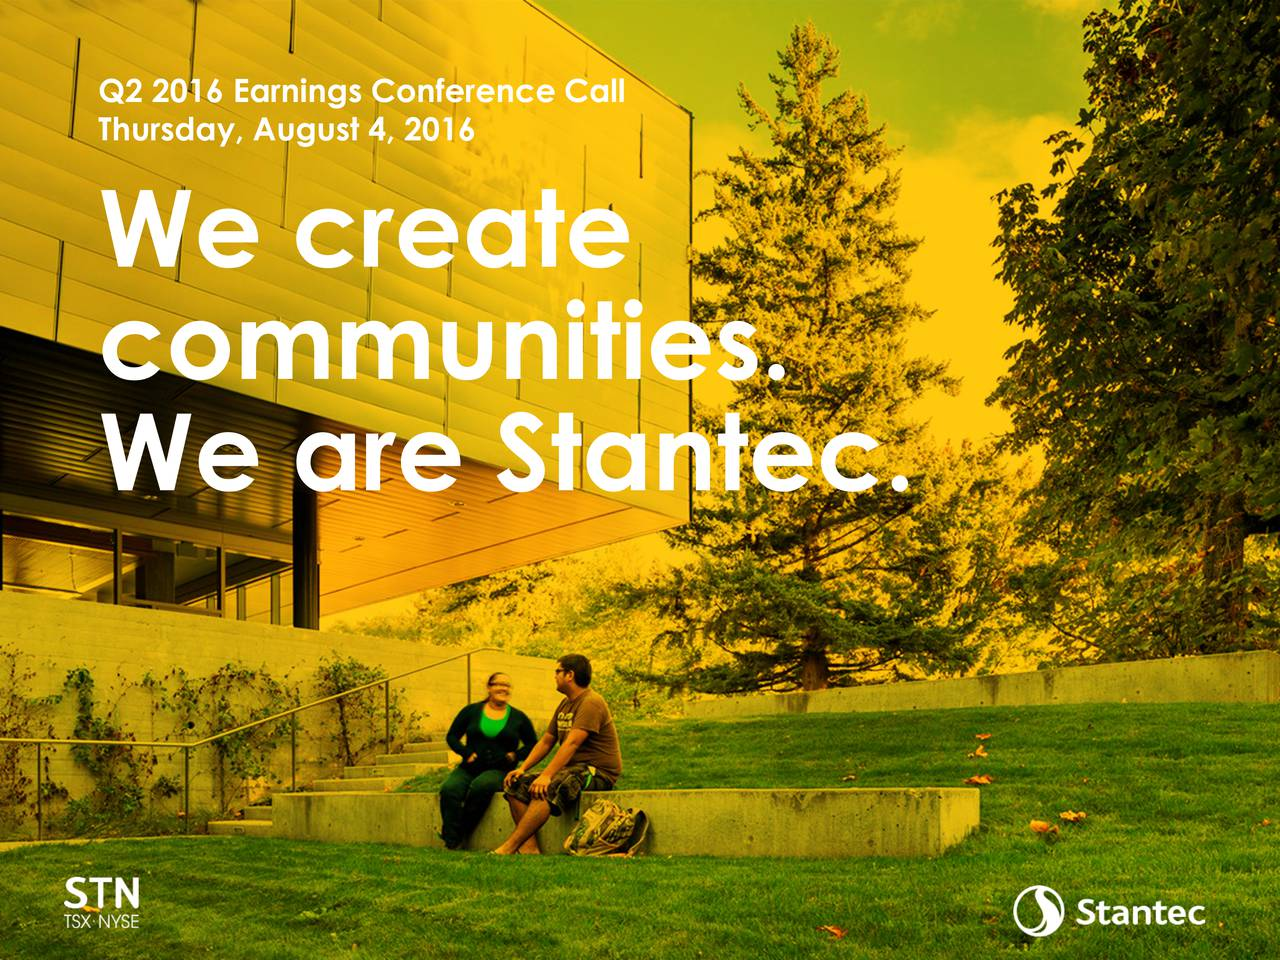 Thursday, August 4, 2016 We create communities. We are Stantec.